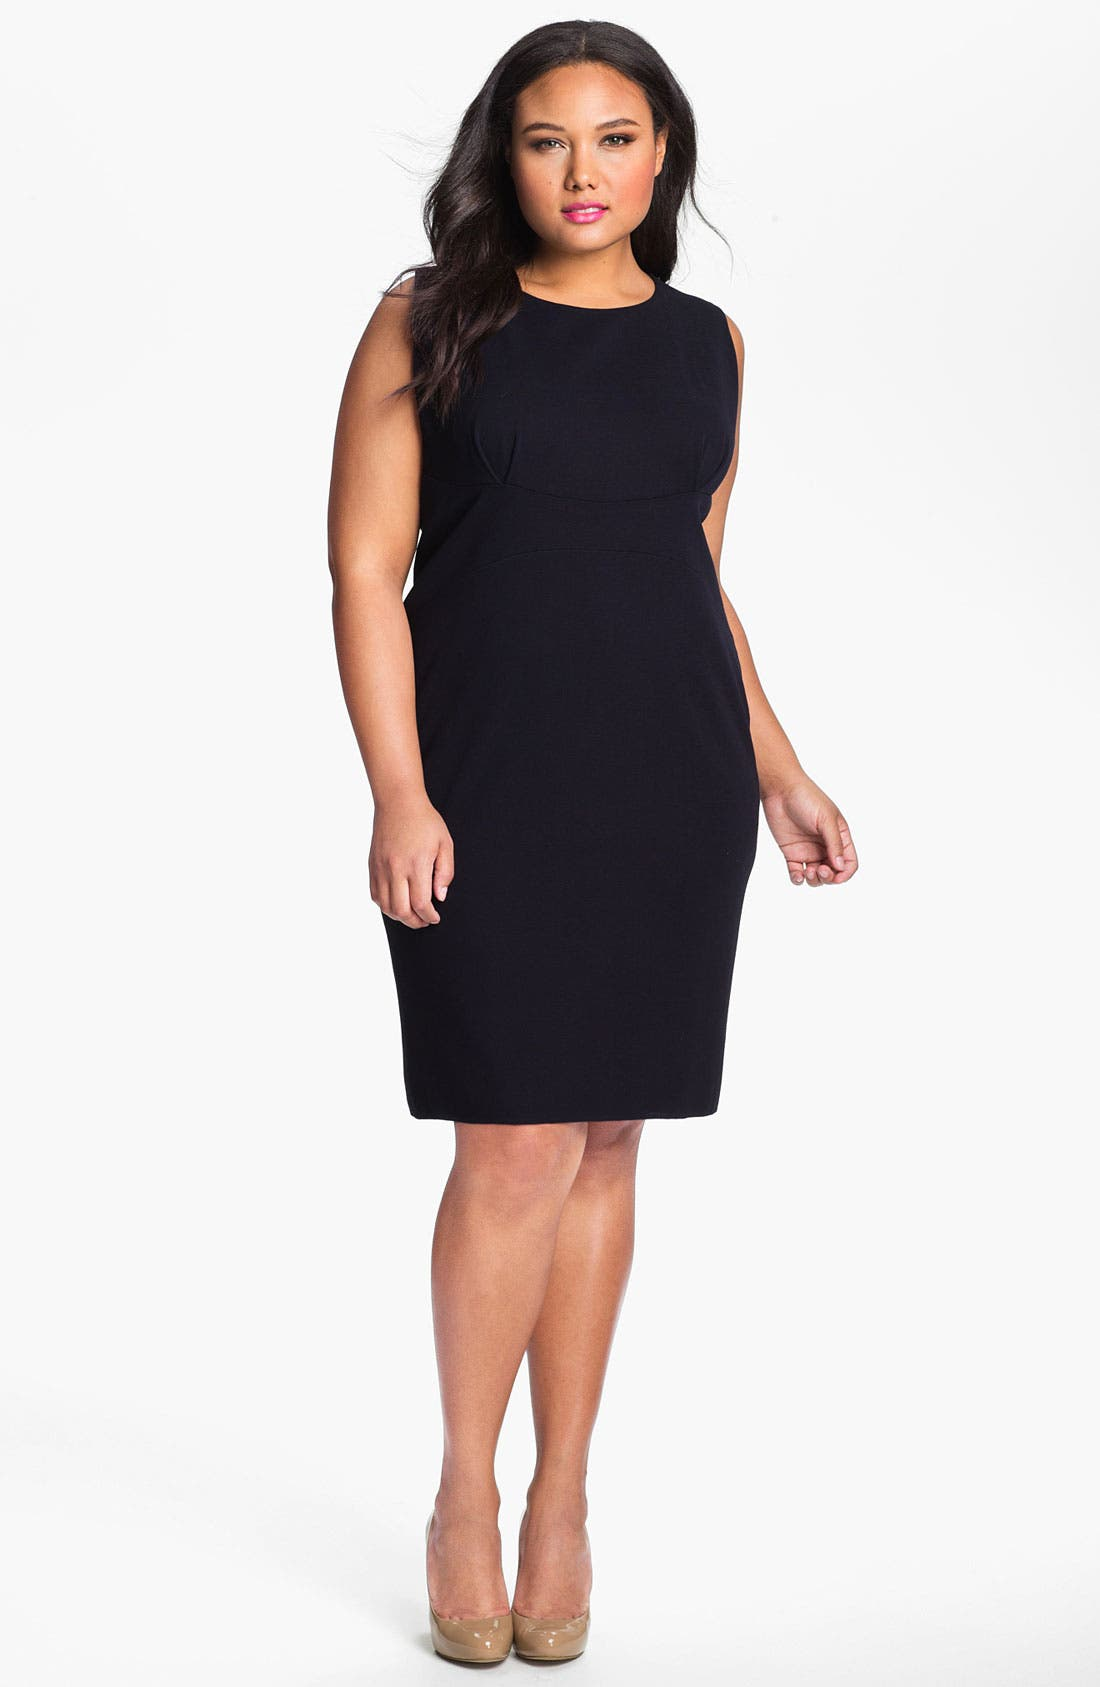 Alternate Image 1 Selected - Exclusively Misook 'Alex' Tailored Sheath Dress (Plus)